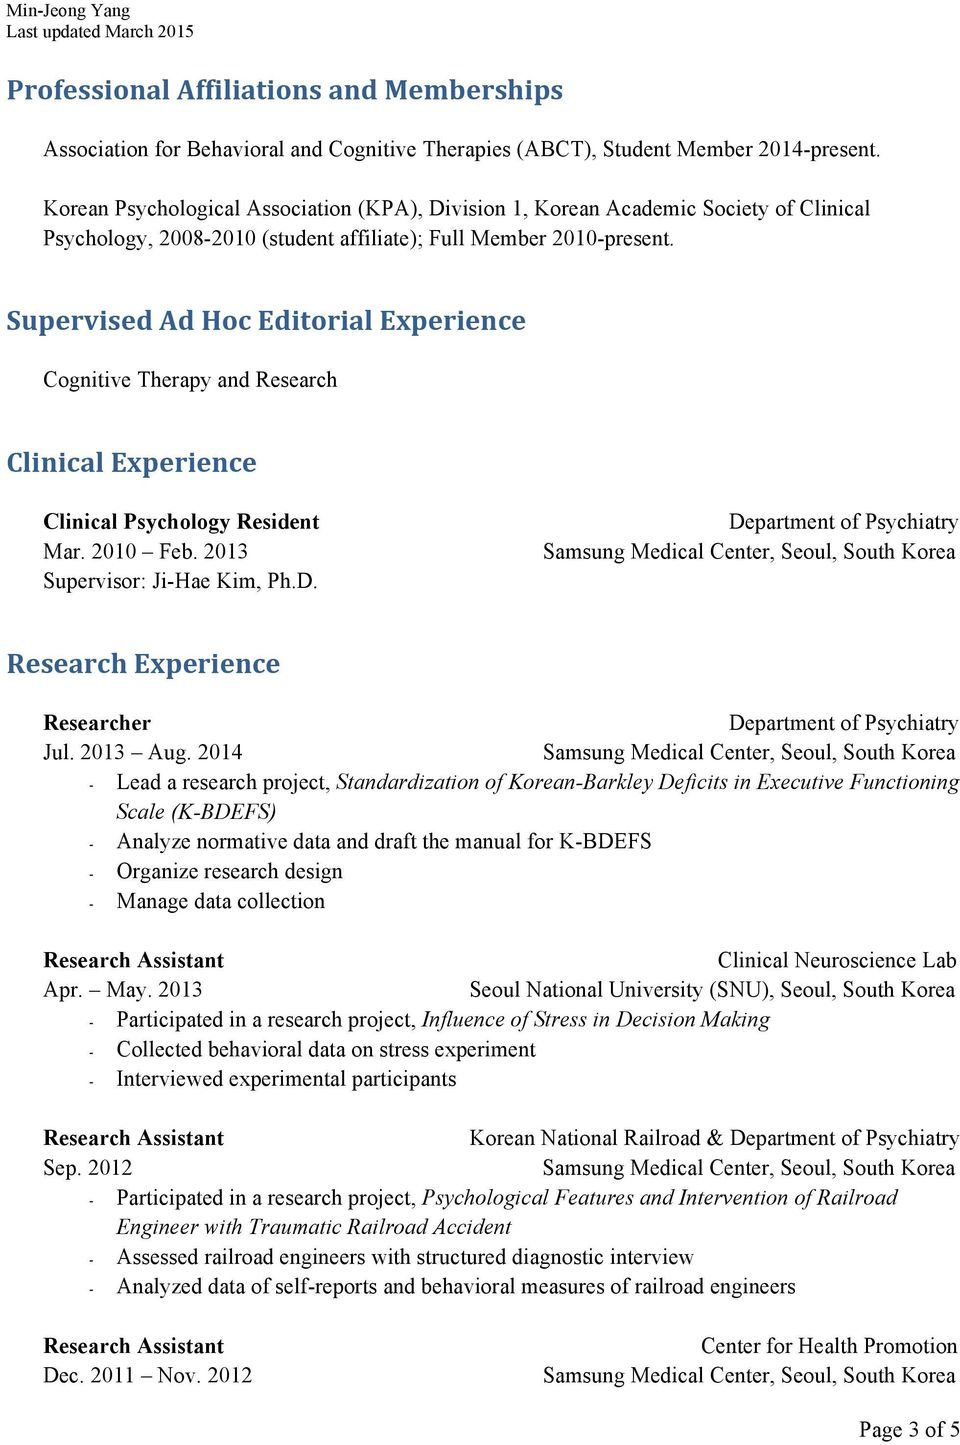 Supervised Ad Hoc Editorial Experience Cognitive Therapy and Research Clinical Experience Clinical Psychology Resident Mar. 2010 Feb. 2013 Supervisor: Ji-Hae Kim, Ph.D.